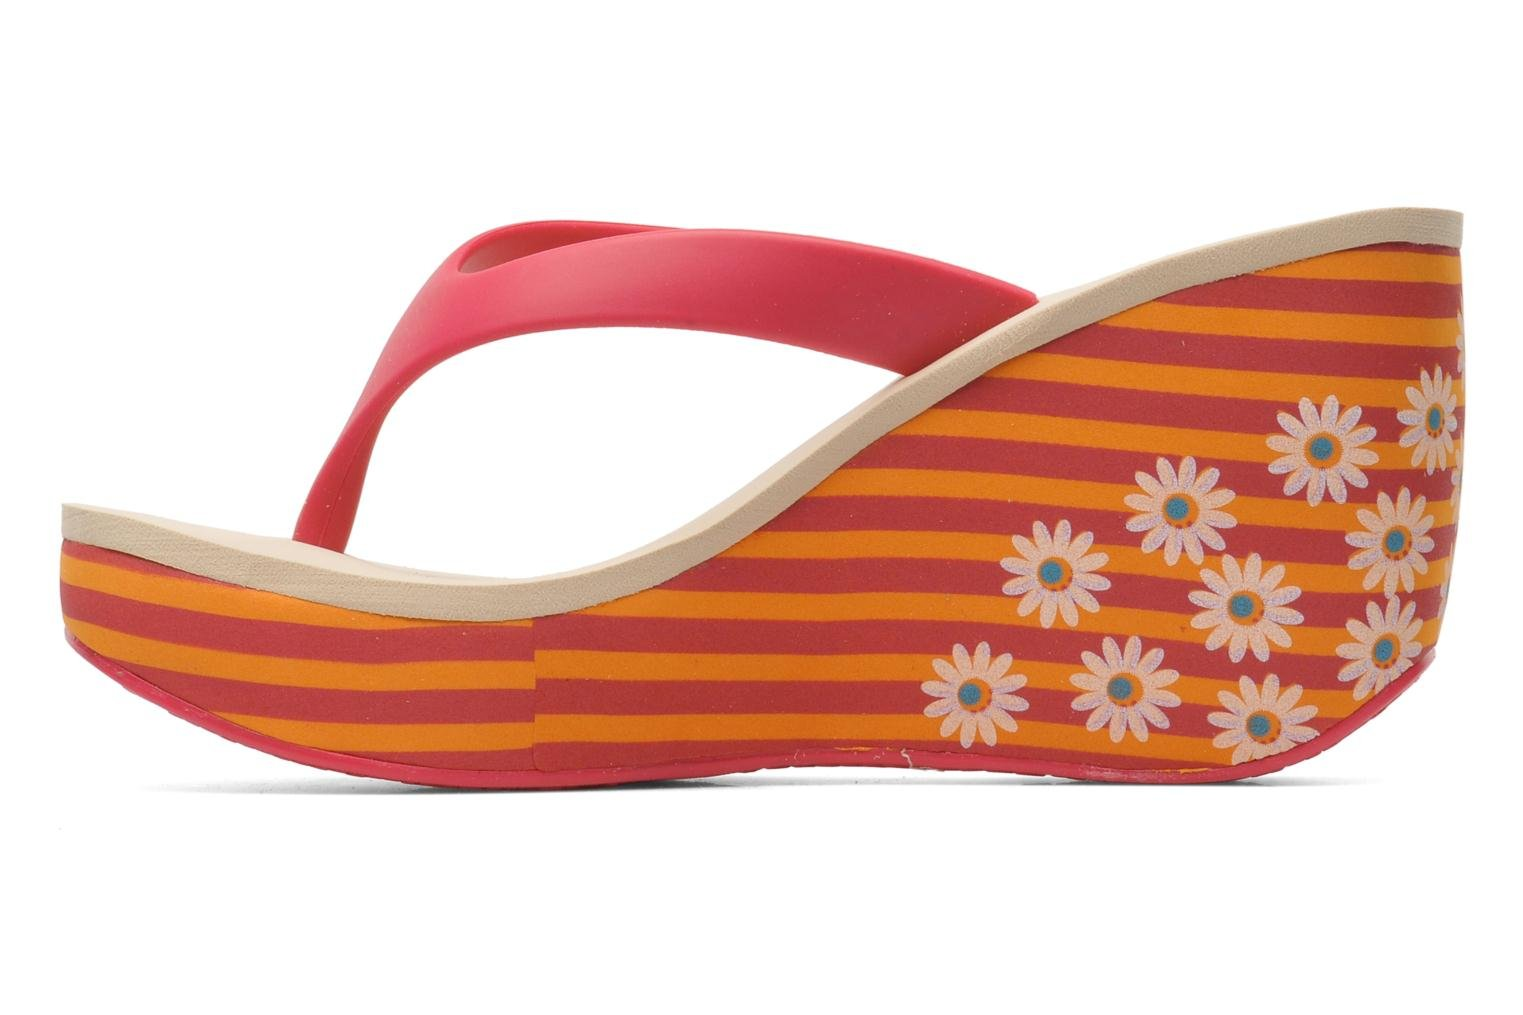 orange rosa flipflops mit blumen streifen und. Black Bedroom Furniture Sets. Home Design Ideas